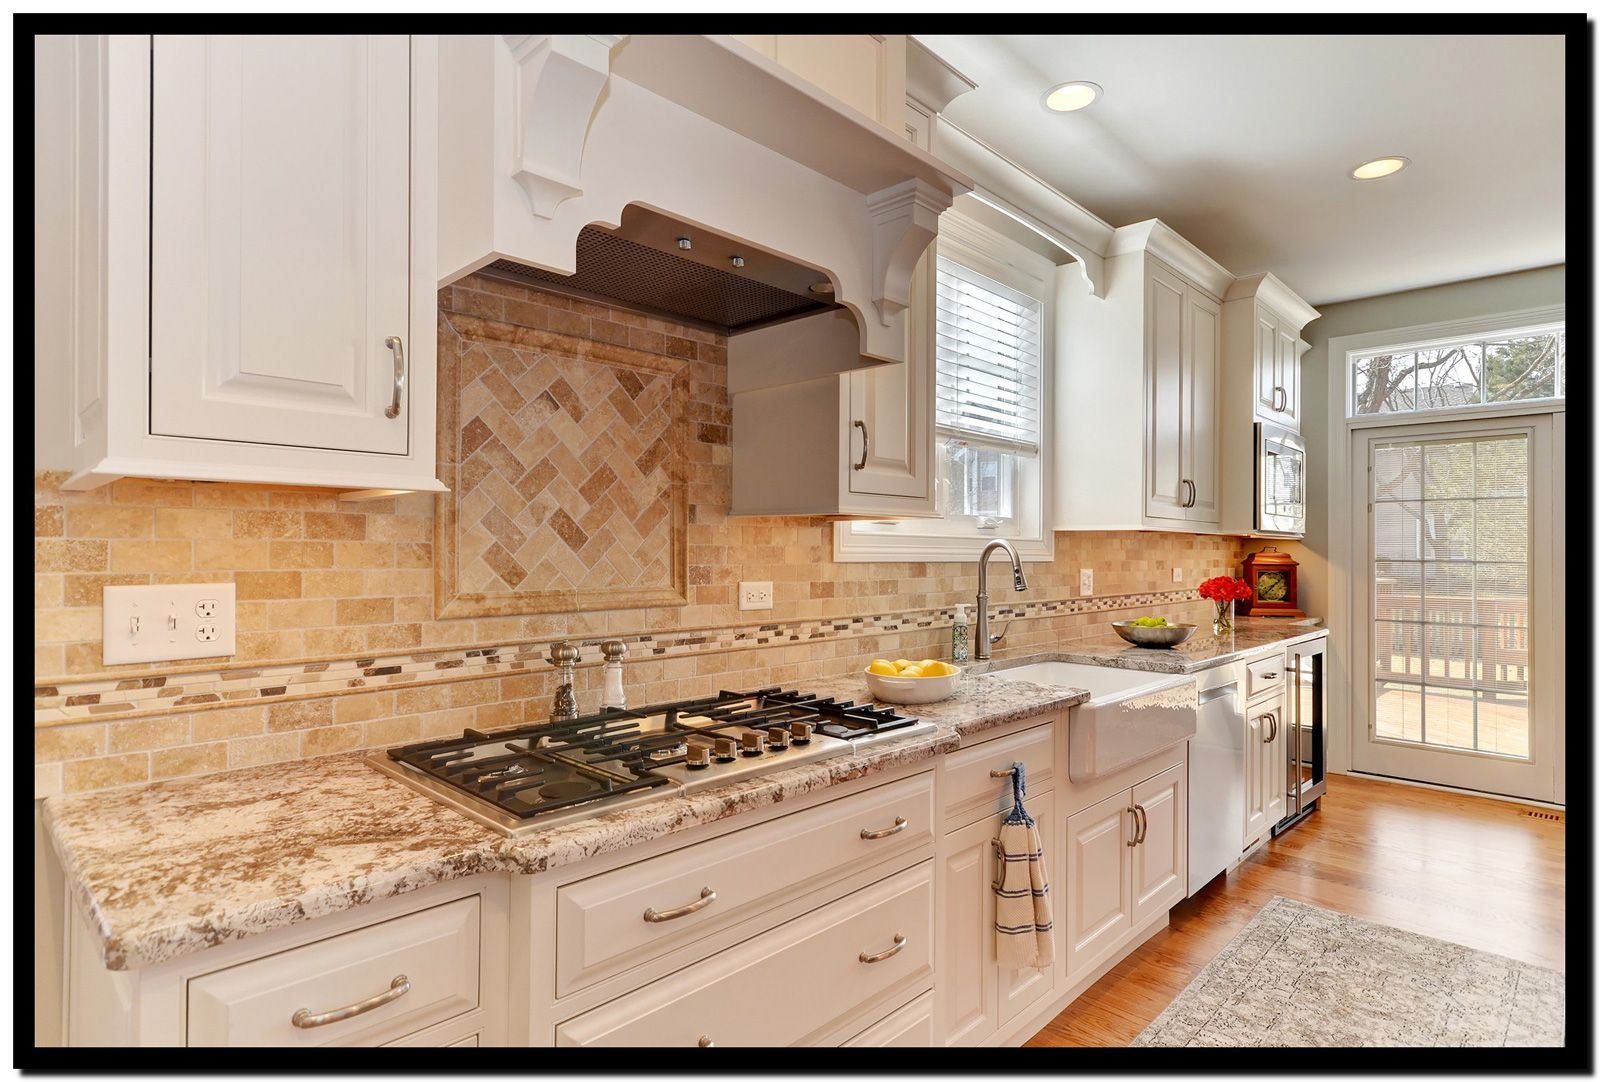 A Kitchen Remodel In Lake Zurich Illinois Uses Two Cabinet Colors To Capture An Upbeat Traditiona Kitchen Design Countertops Modern Kitchen Room Kitchen Style